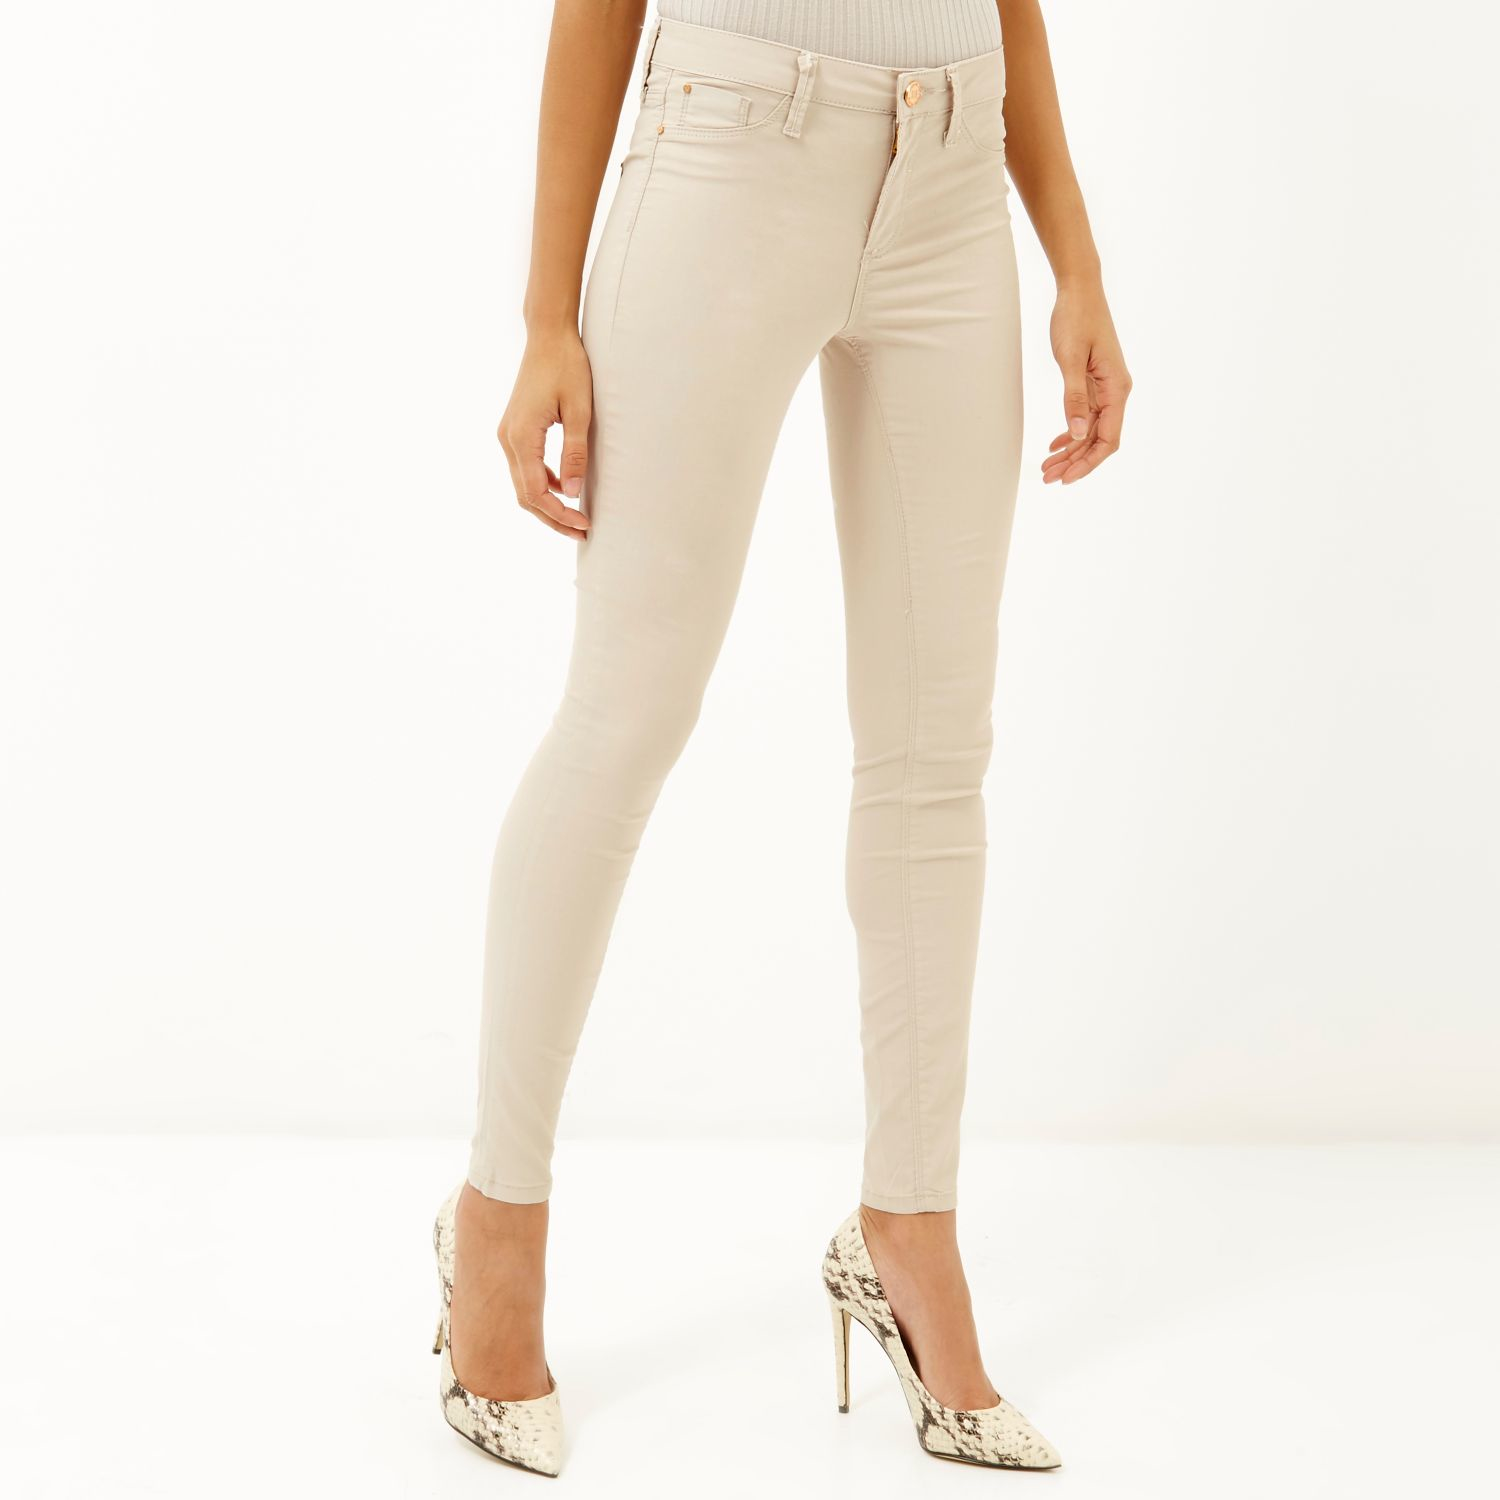 Womens White Molly mid rise diamante jeans River Island fcO2S